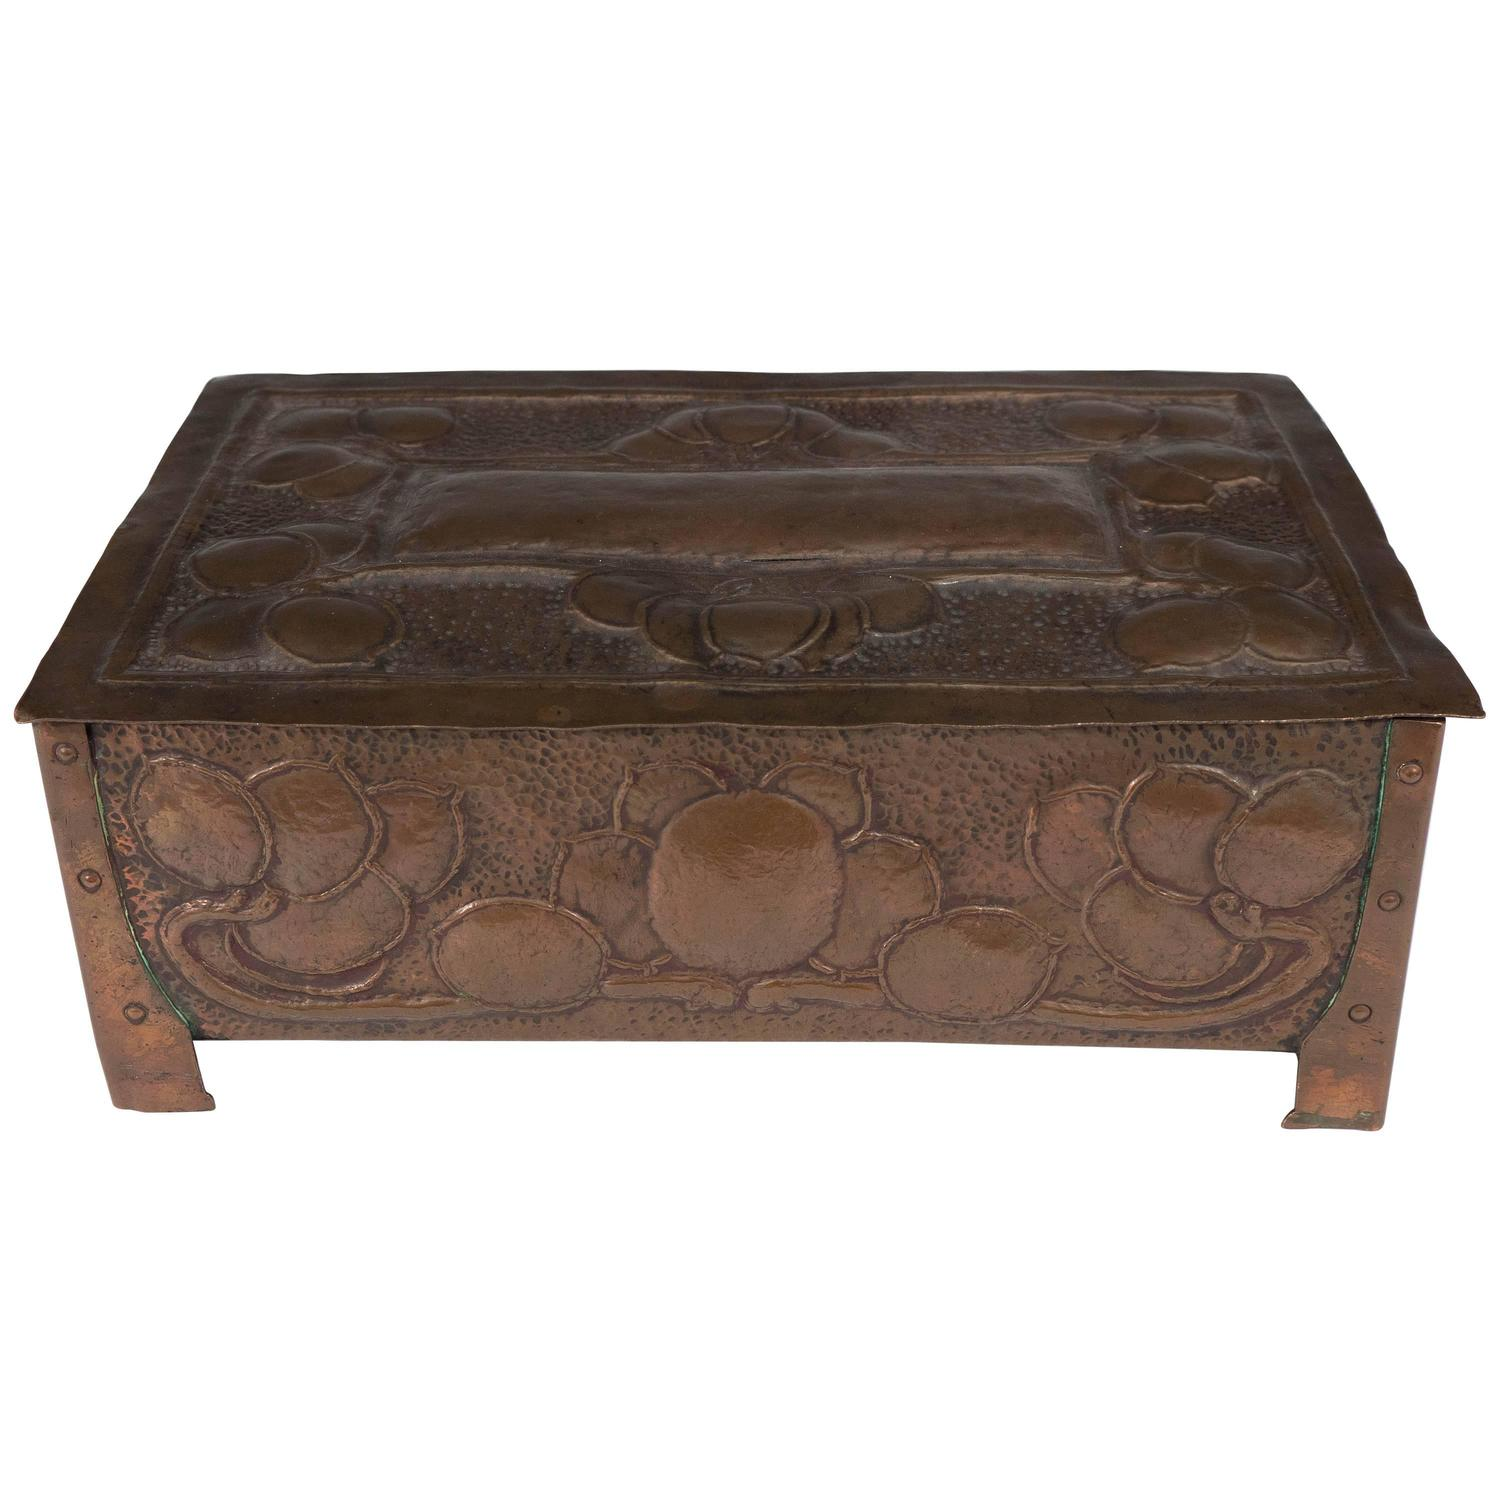 An English Early 20th Century Arts and Crafts Copper Box For Sale